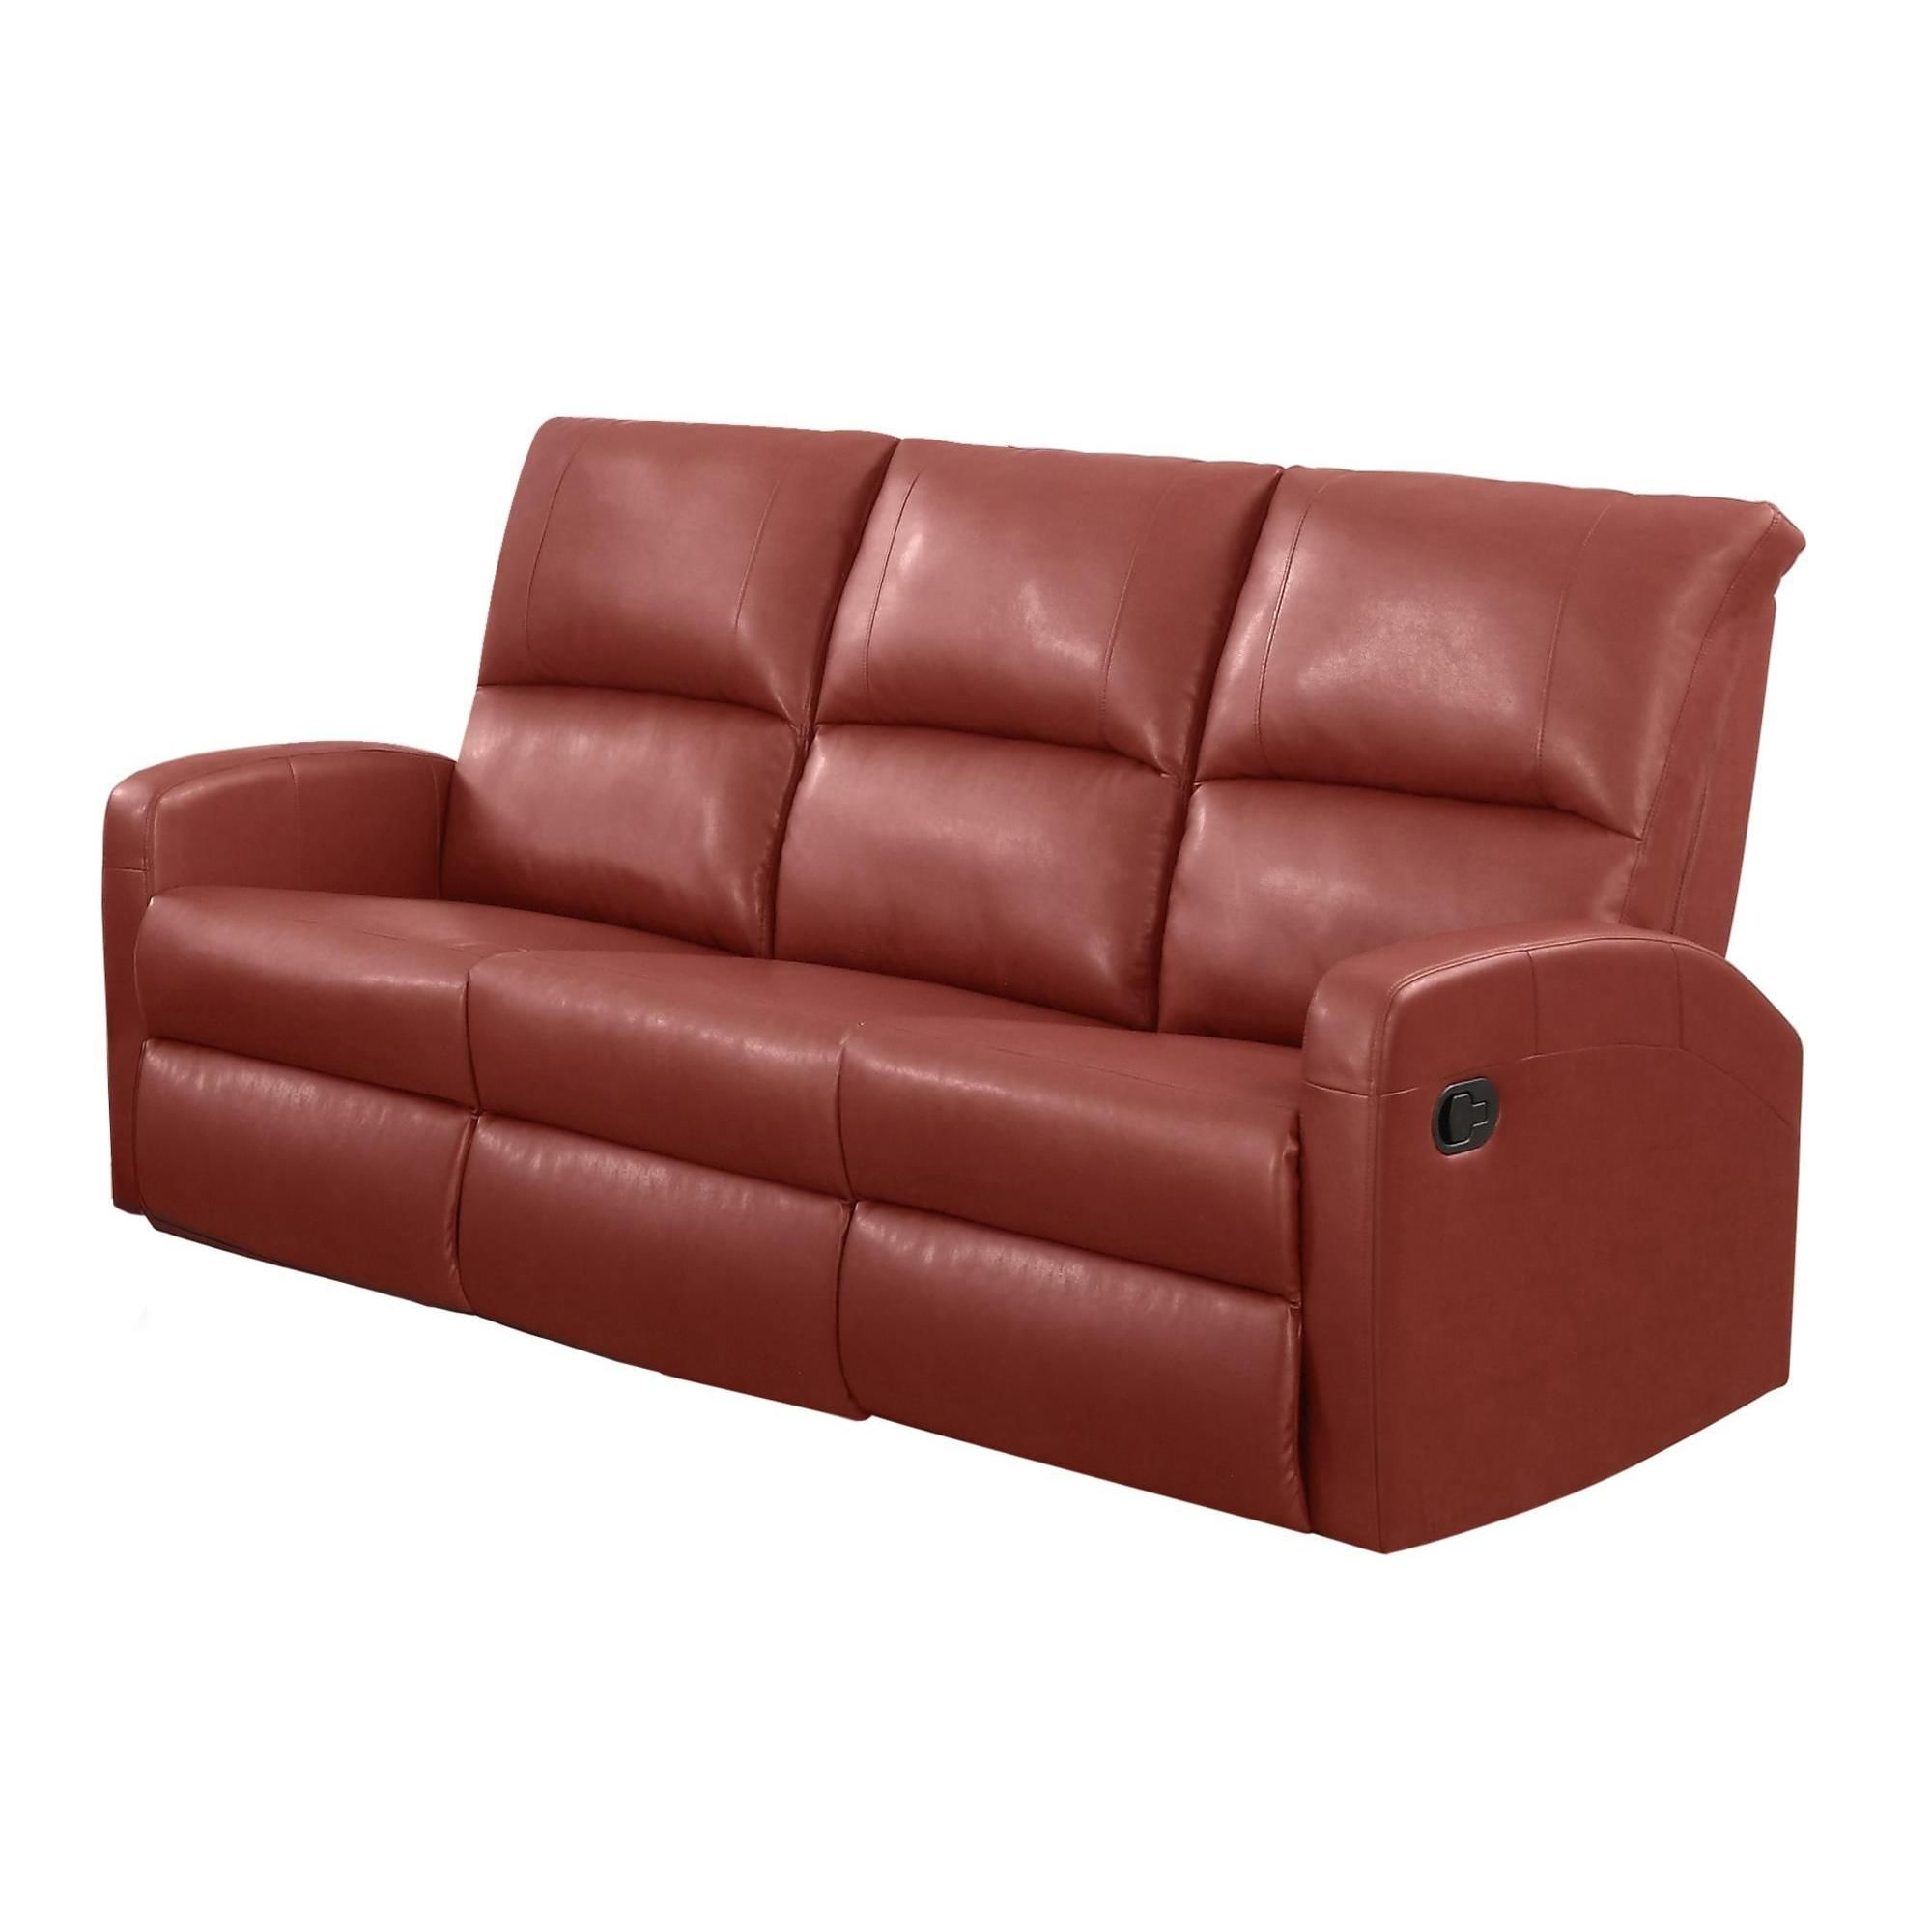 red leather reclining sofa. Monarch Red Bonded Leather Reclining Sofa (Red) D